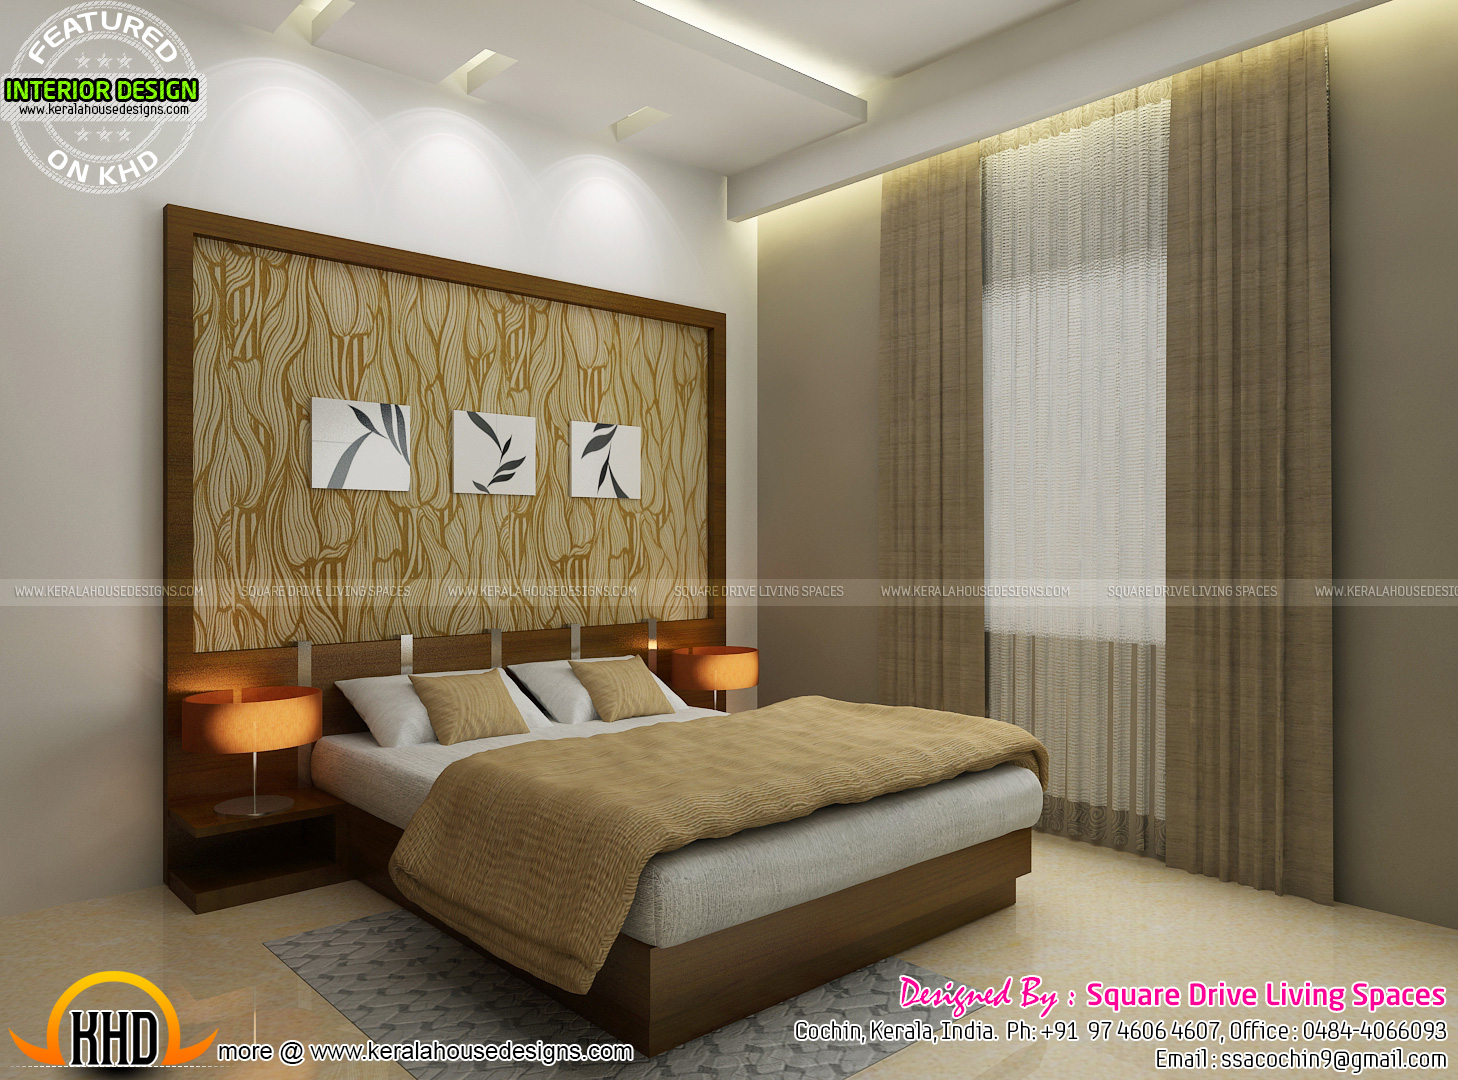 Interior designs of master bedroom living kitchen and for 3 bedroom interior design